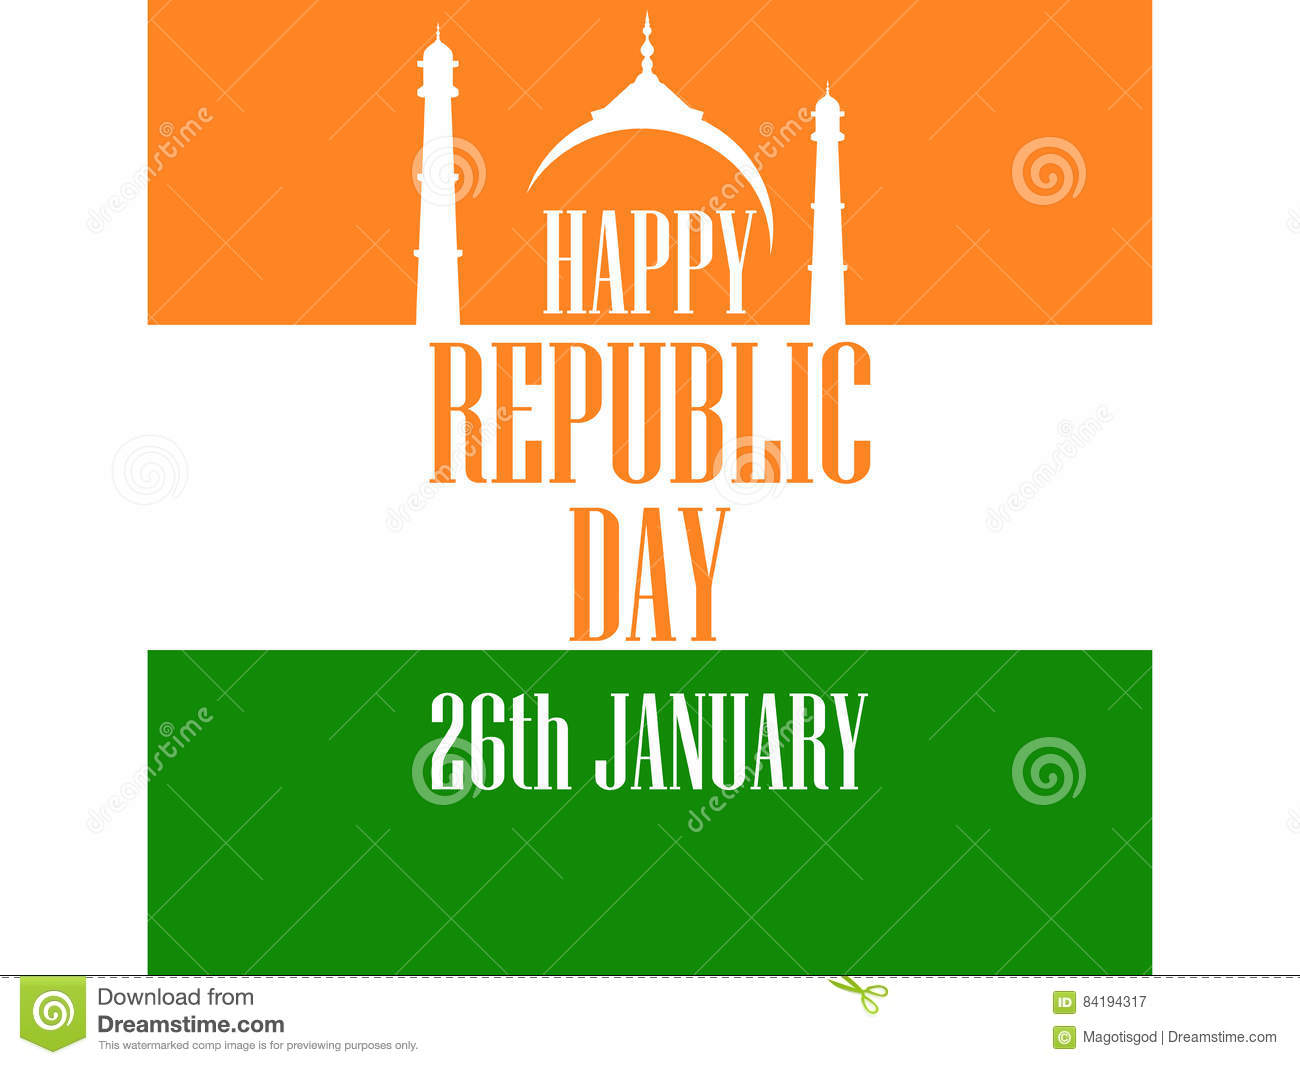 26 january republic day india the text of congratulations for the